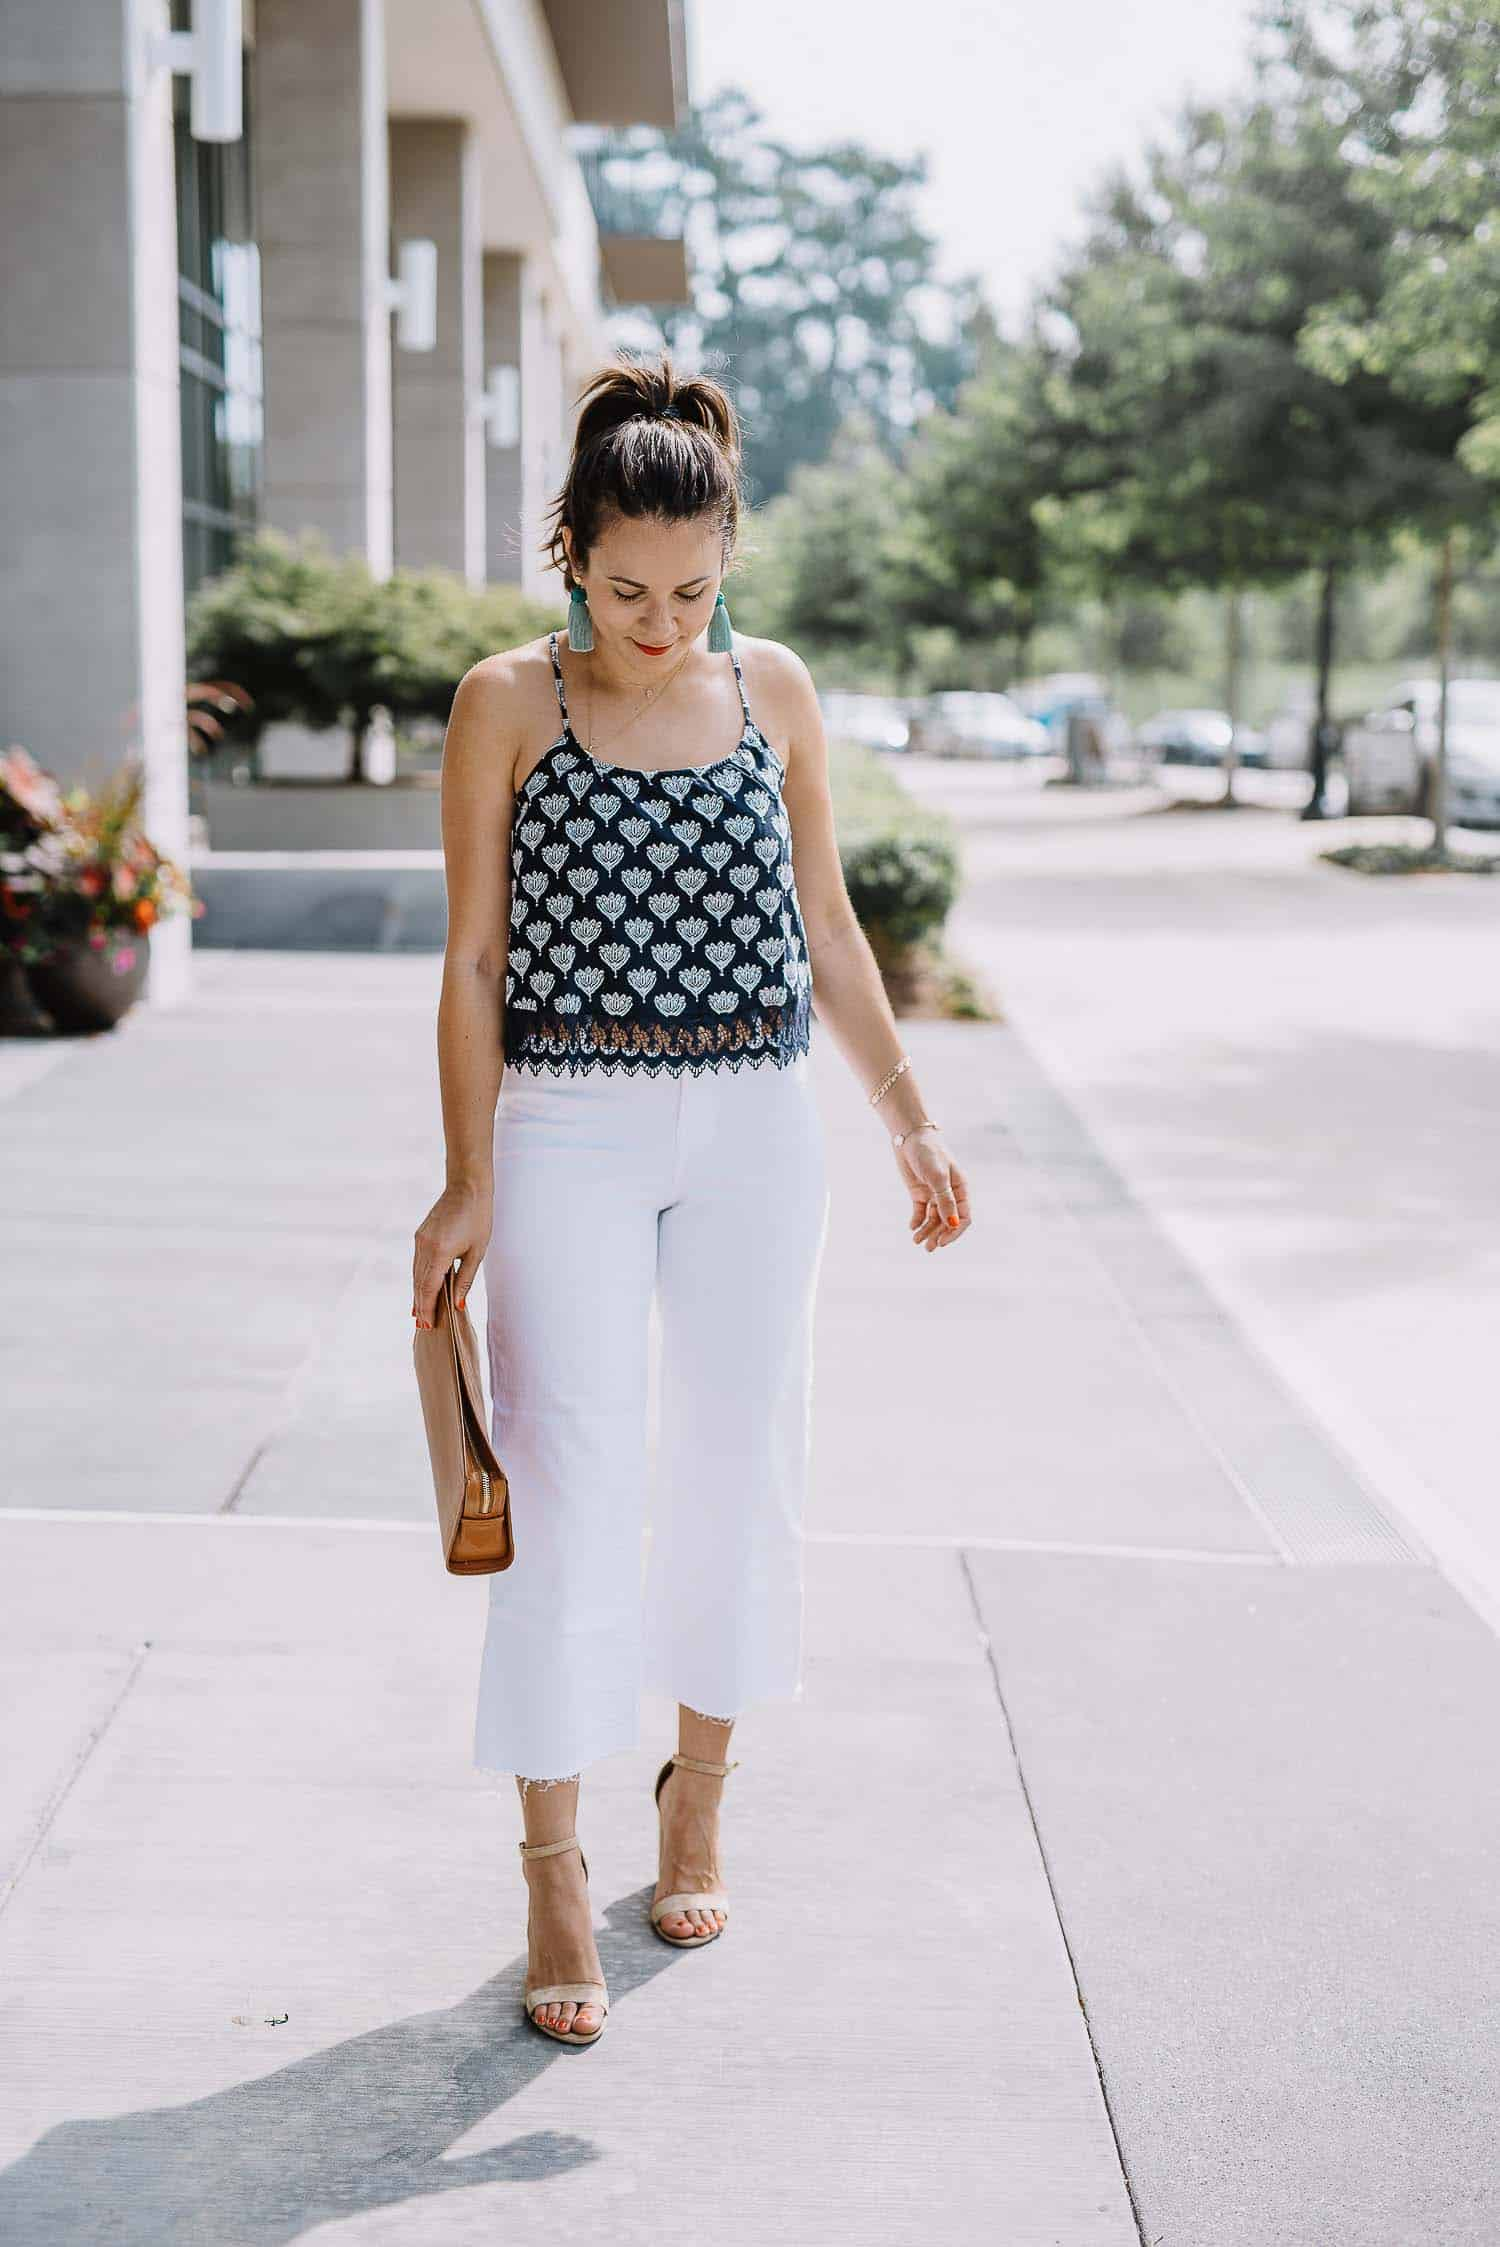 summer outfit ideas from fashion blogger My Style Vita